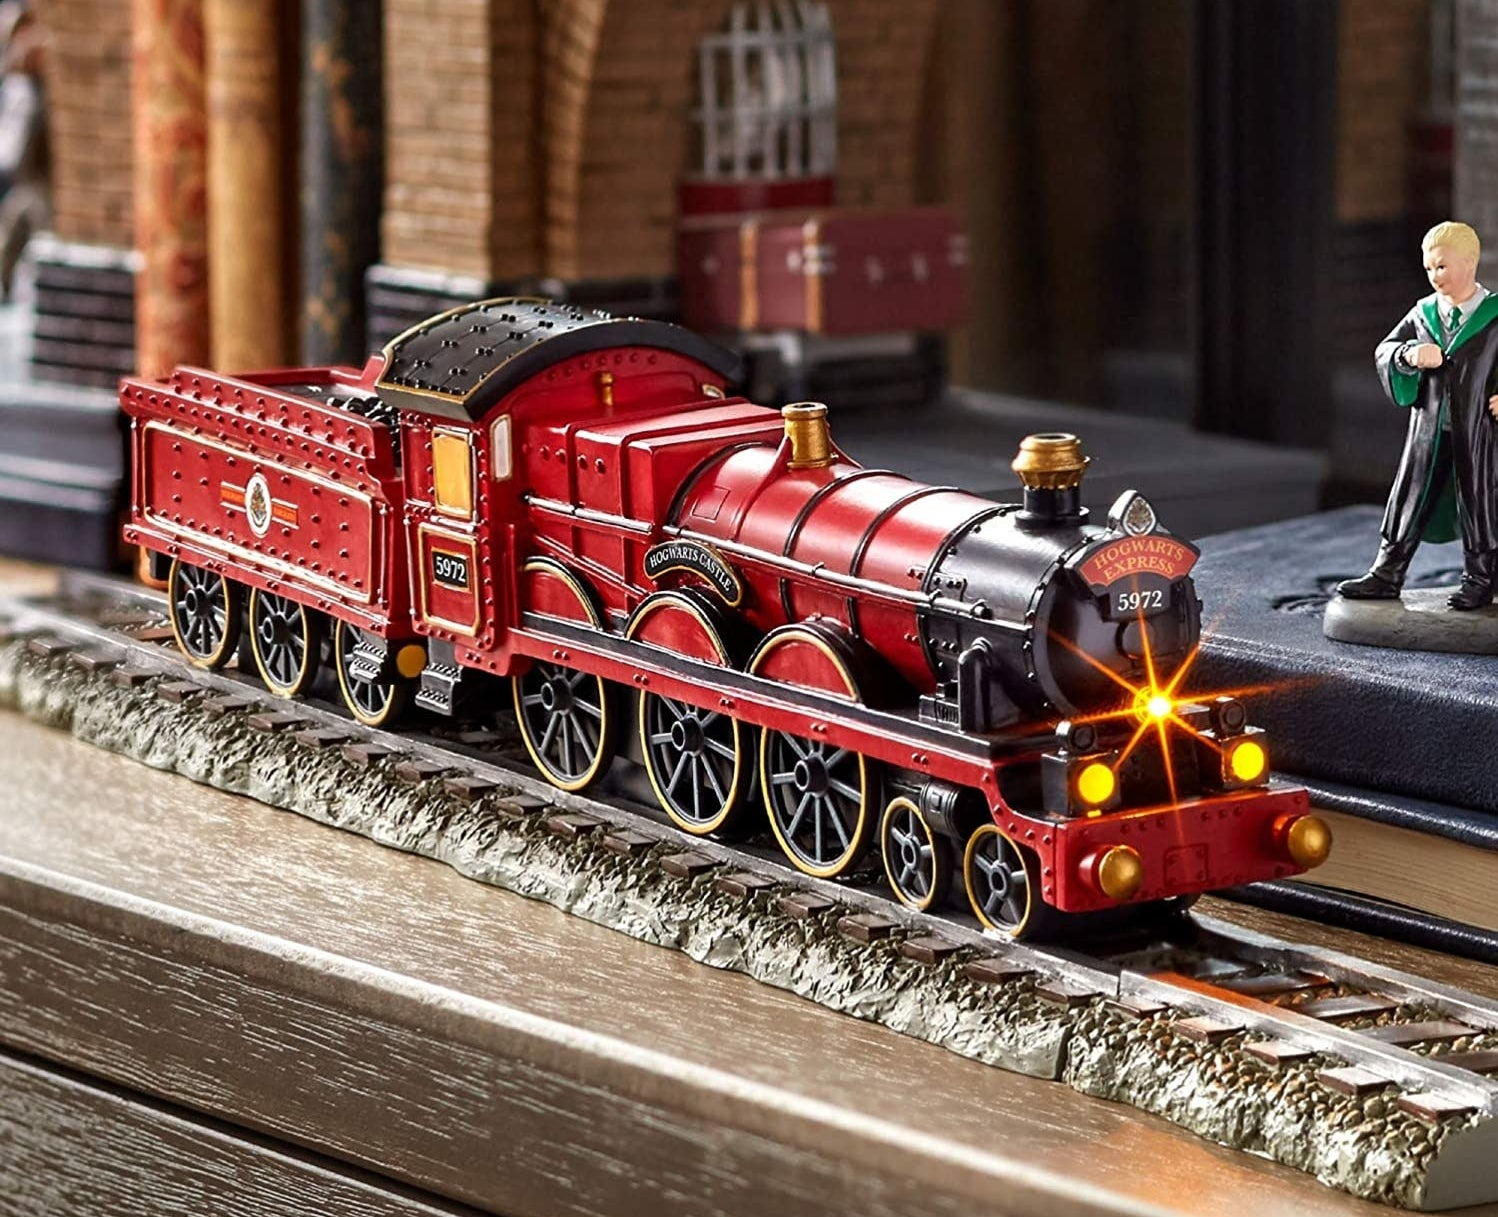 the red Howarts Express train